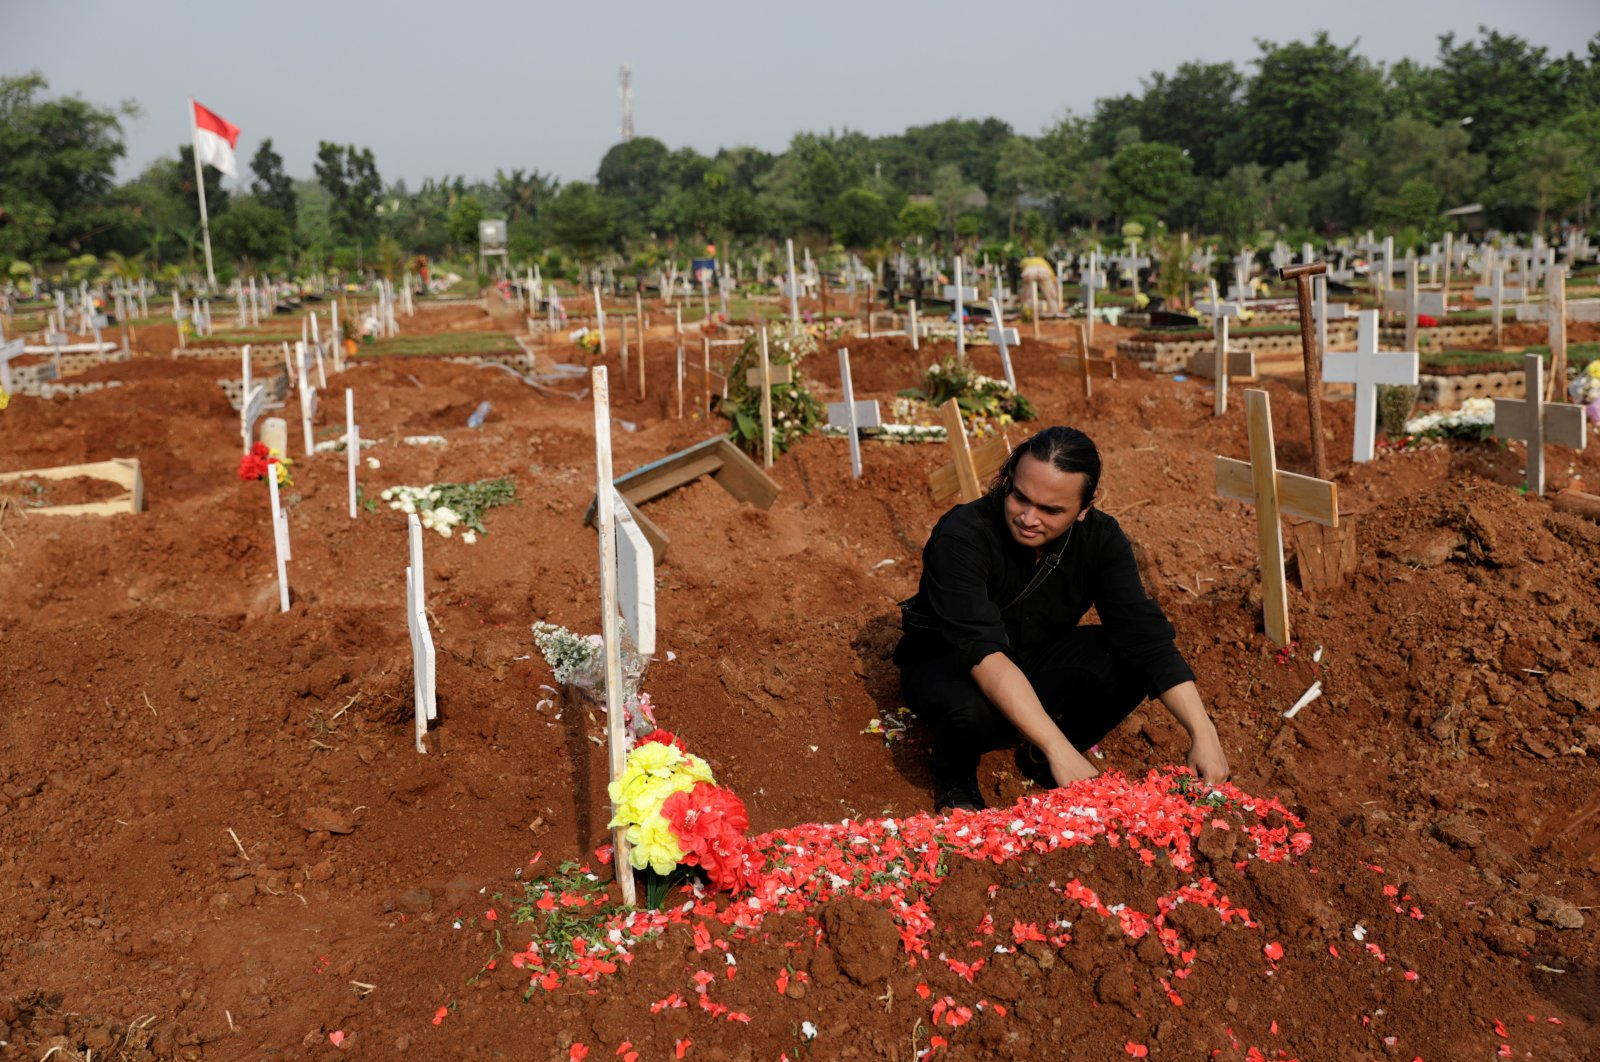 Risalvy H. A., 23, mourns at the grave of his 65-year-old father who passed away due to COVID-19, during the funeral at a burial area provided by the government for COVID-19 victims as the cases surge, in Bekasi, on the outskirts of Jakarta, Indonesia, July 15, 2021. (Reuters Photo)